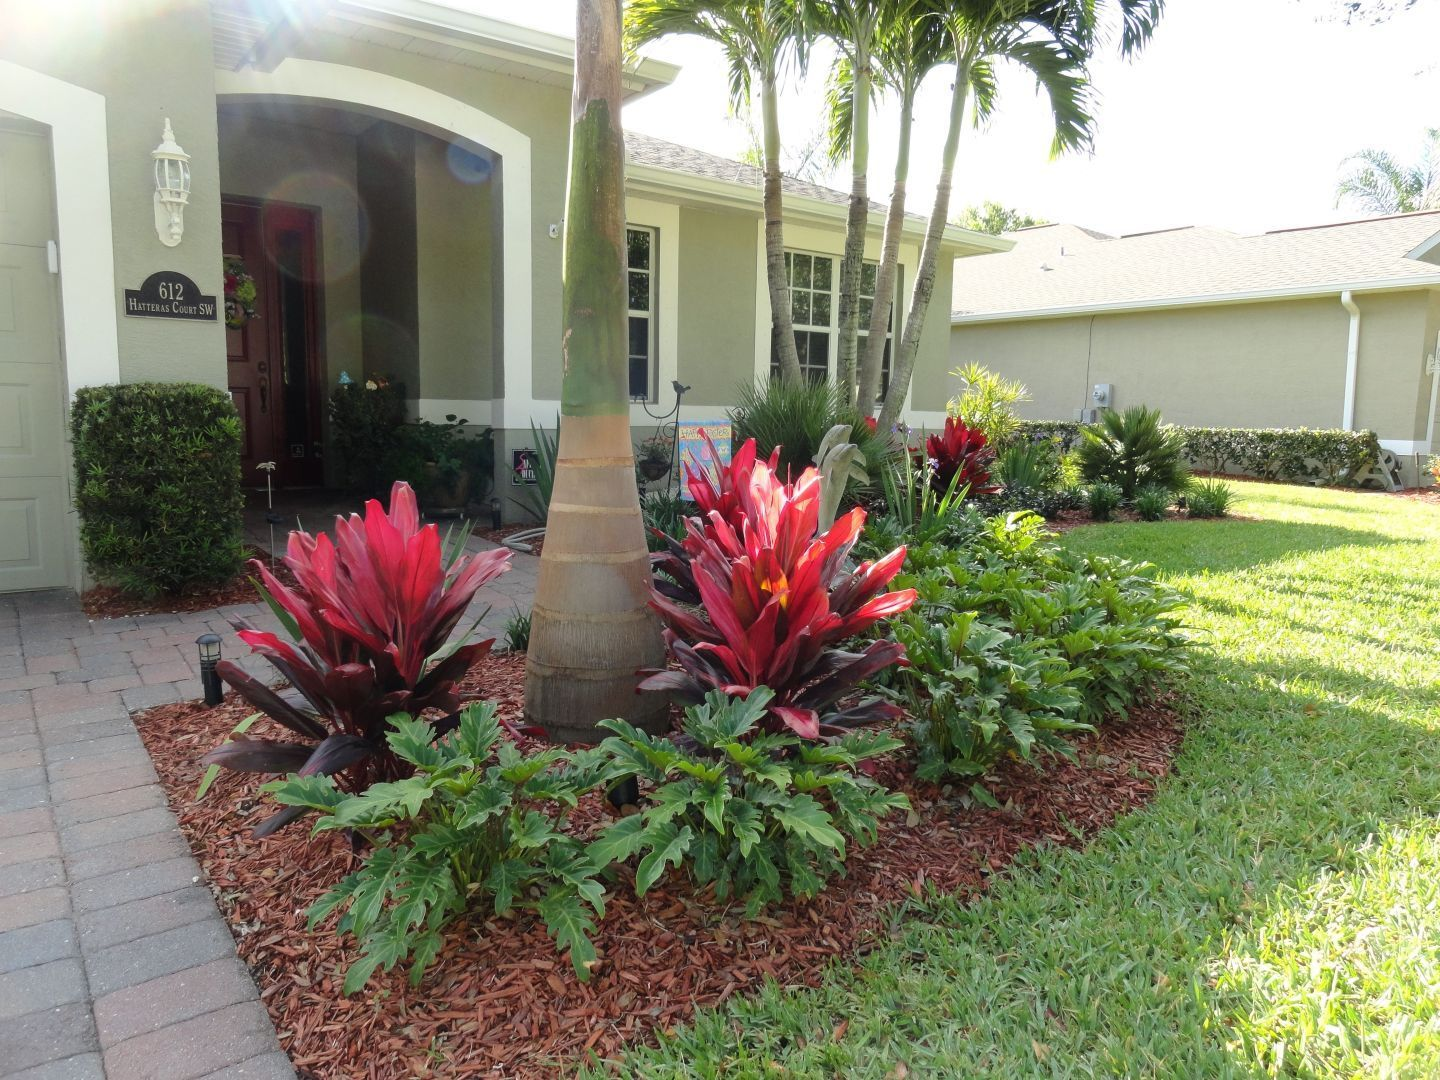 South Florida Tropical Landscaping Ideas South Florida Tropical Landscaping Ideas Tropical Landscaping Tropical Landscape Design Small Front Yard Landscaping Florida backyard garden design ideas